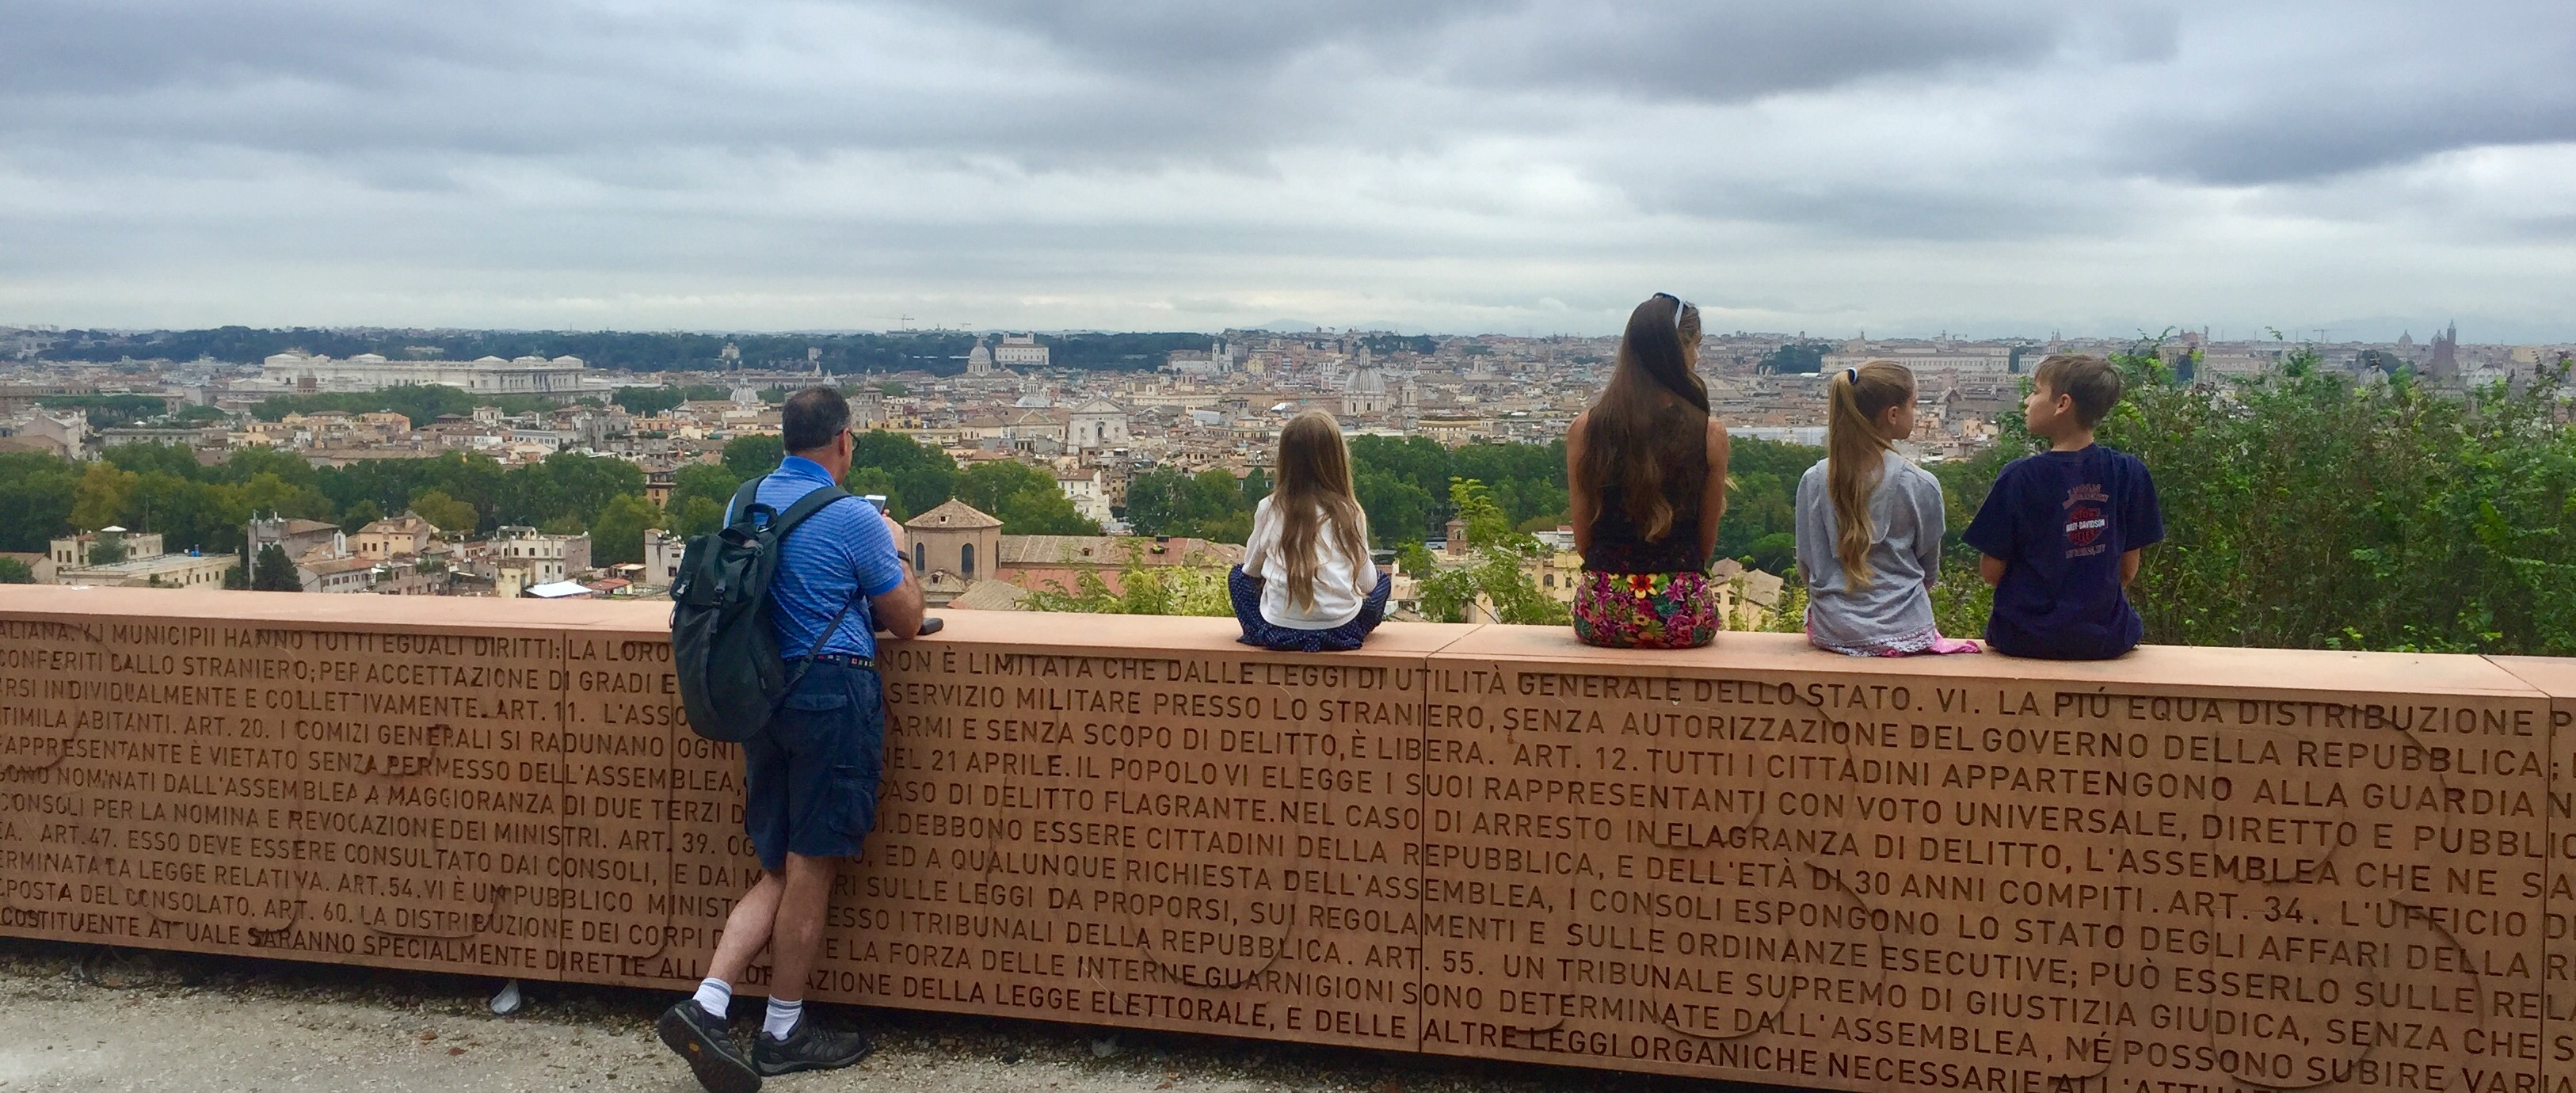 View over Rome from the Janiculum Hill